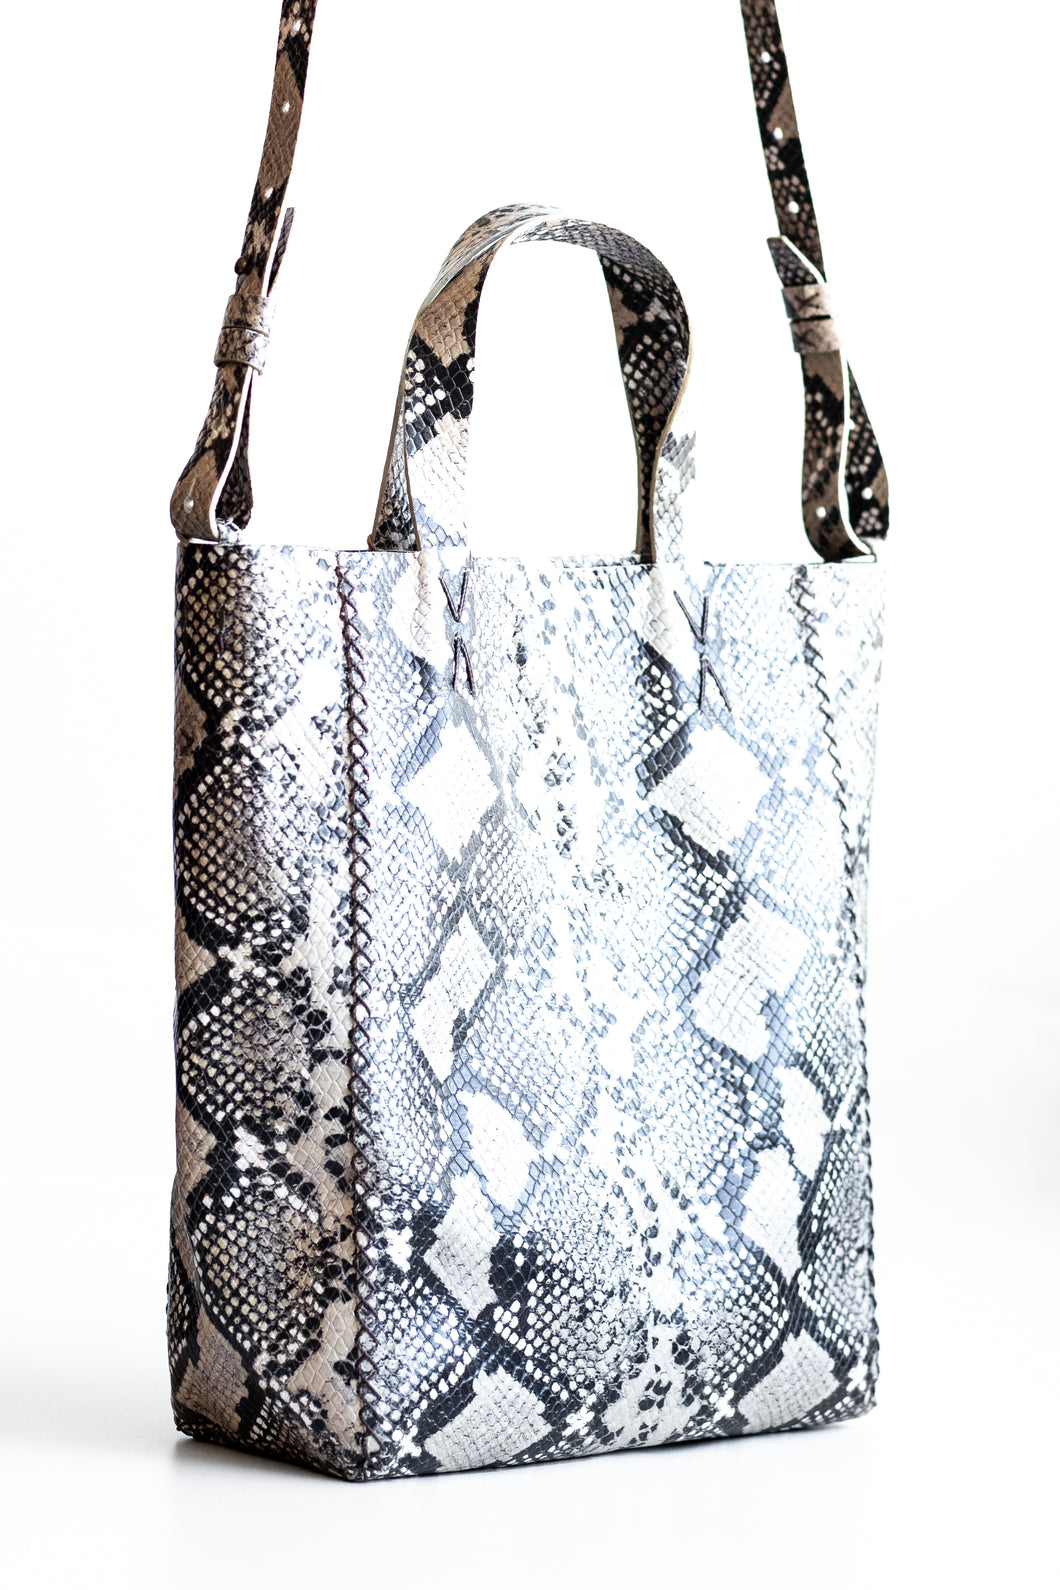 copacabana bag | black, brown, and beige snake-embossed leather - Volta Atelier